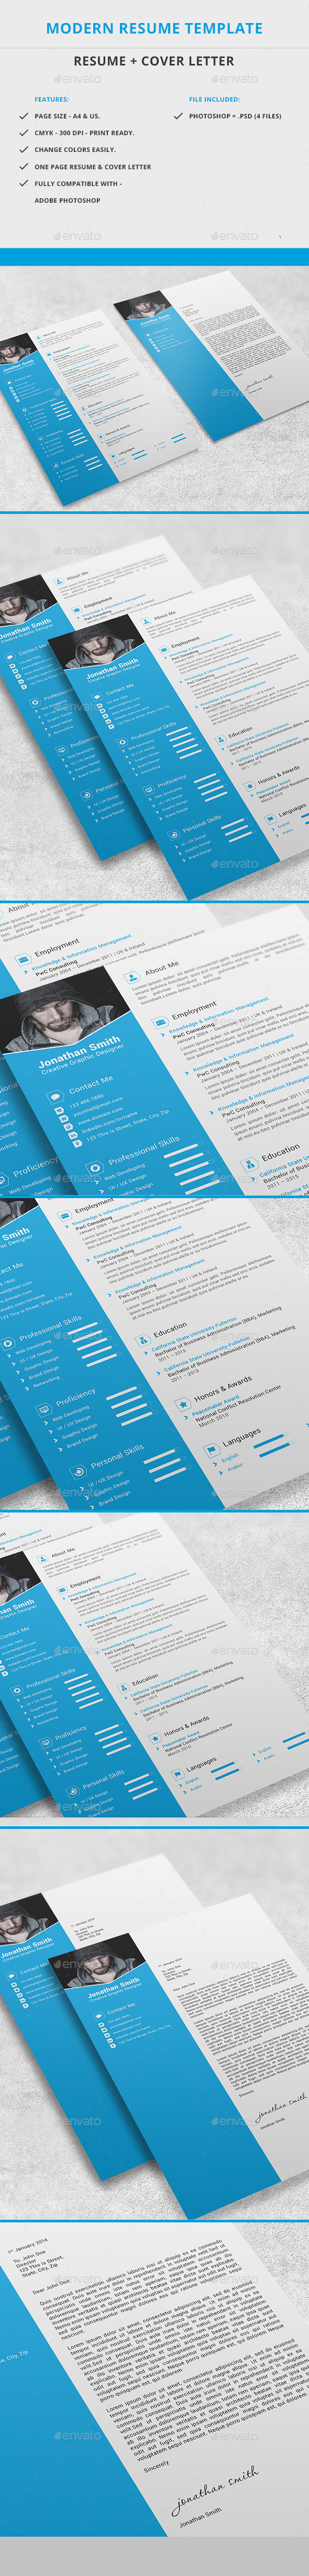 GraphicRiver Modern Resume Template 9902248